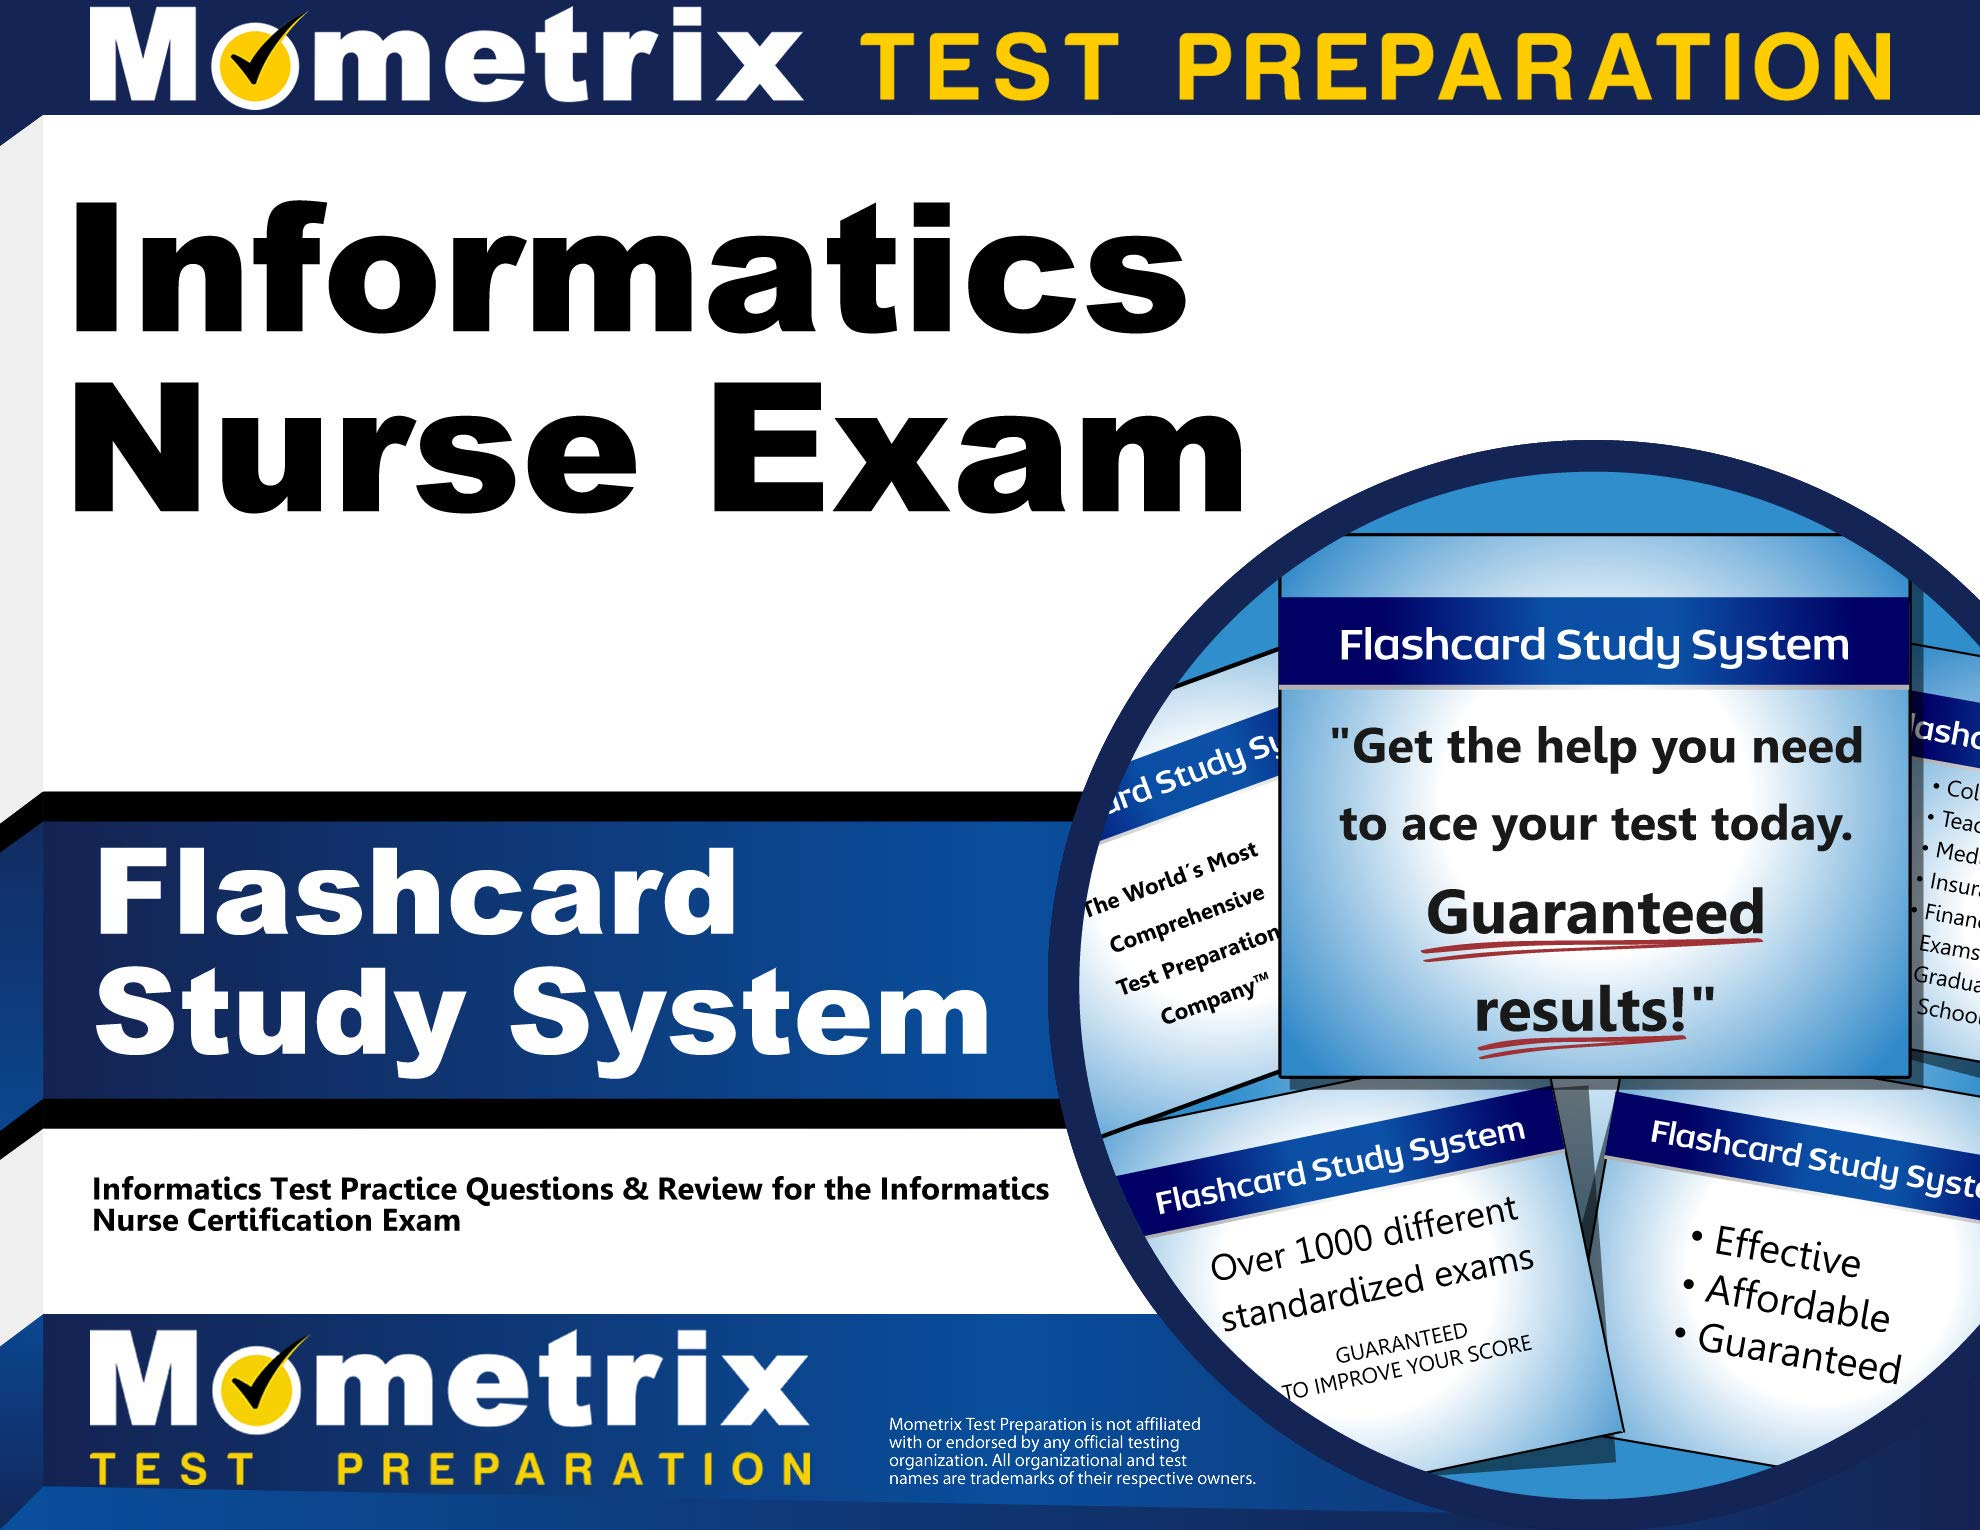 Informatics Nurse Exam Flashcard Study System: Informatics Test Practice Questions & Review For The Informatics Nurse Cert...